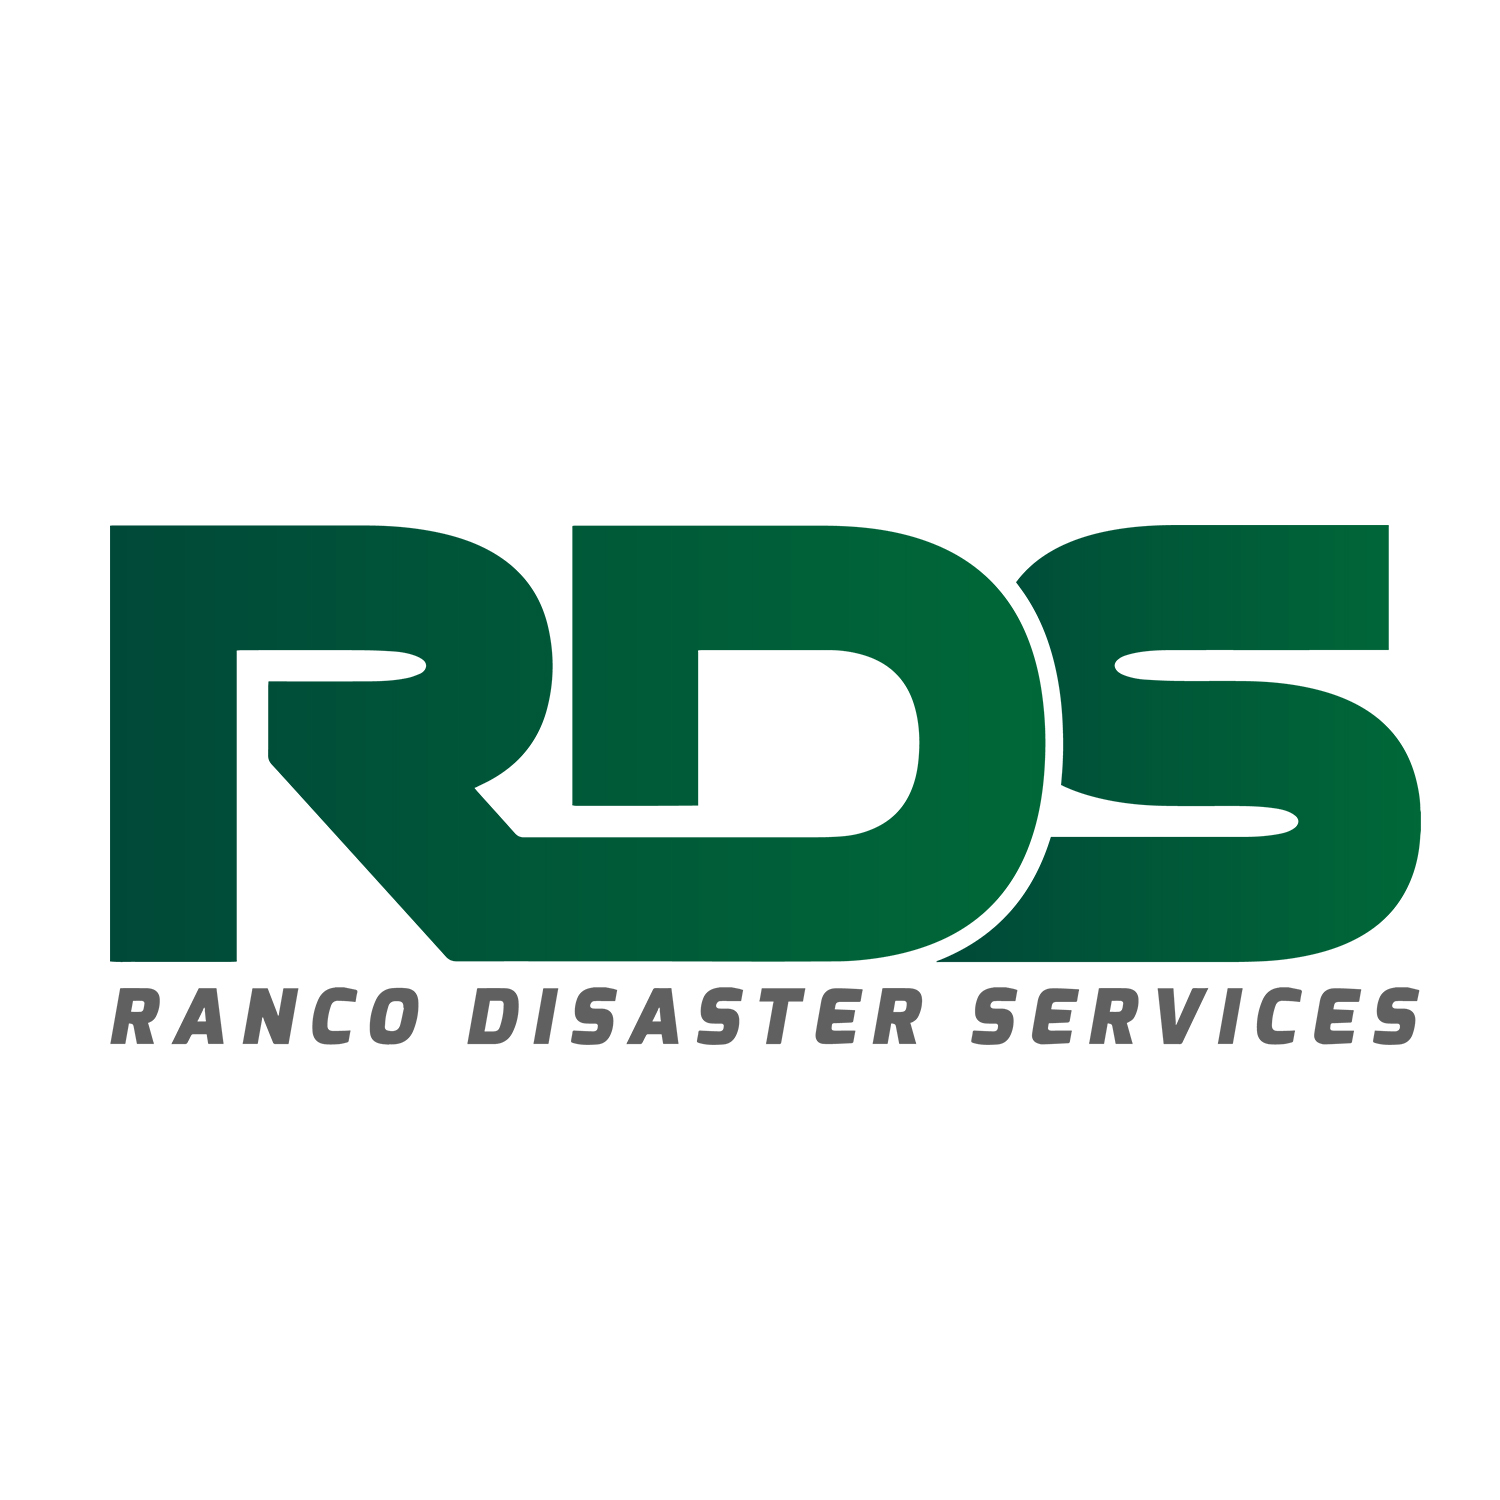 Ranco Disaster Services